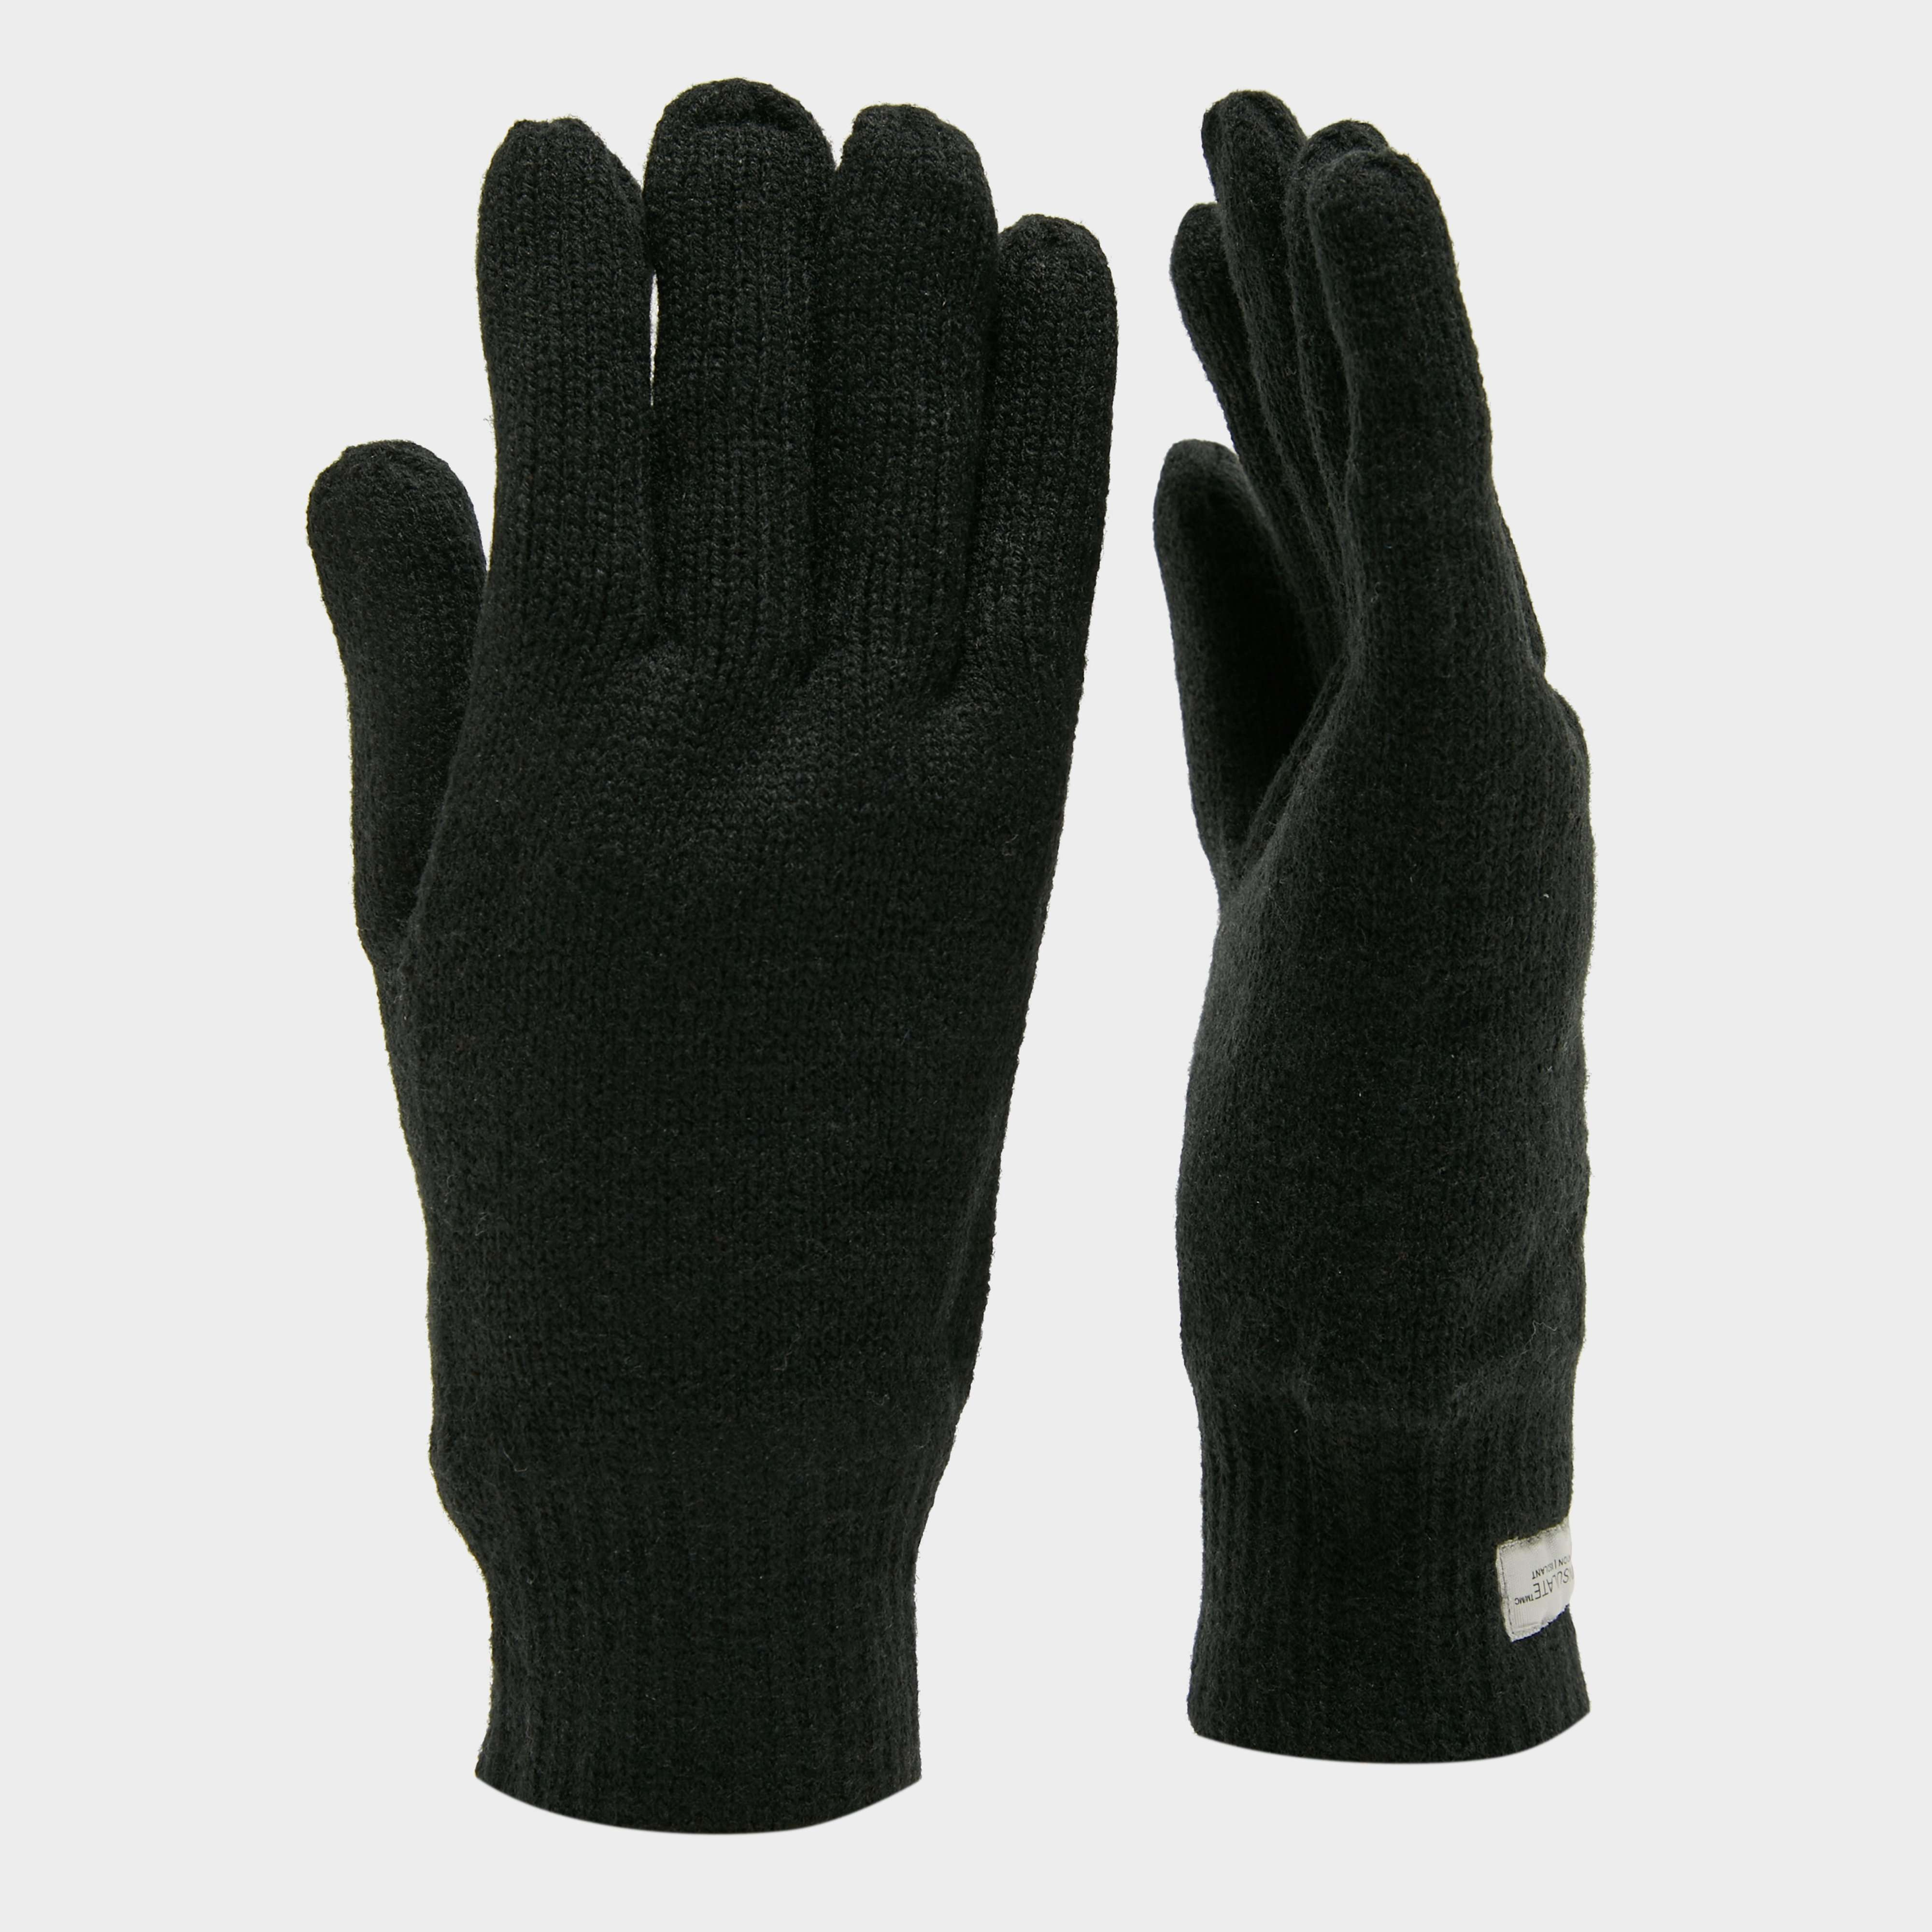 PETER STORM Men's Thinsulate Knit Gloves